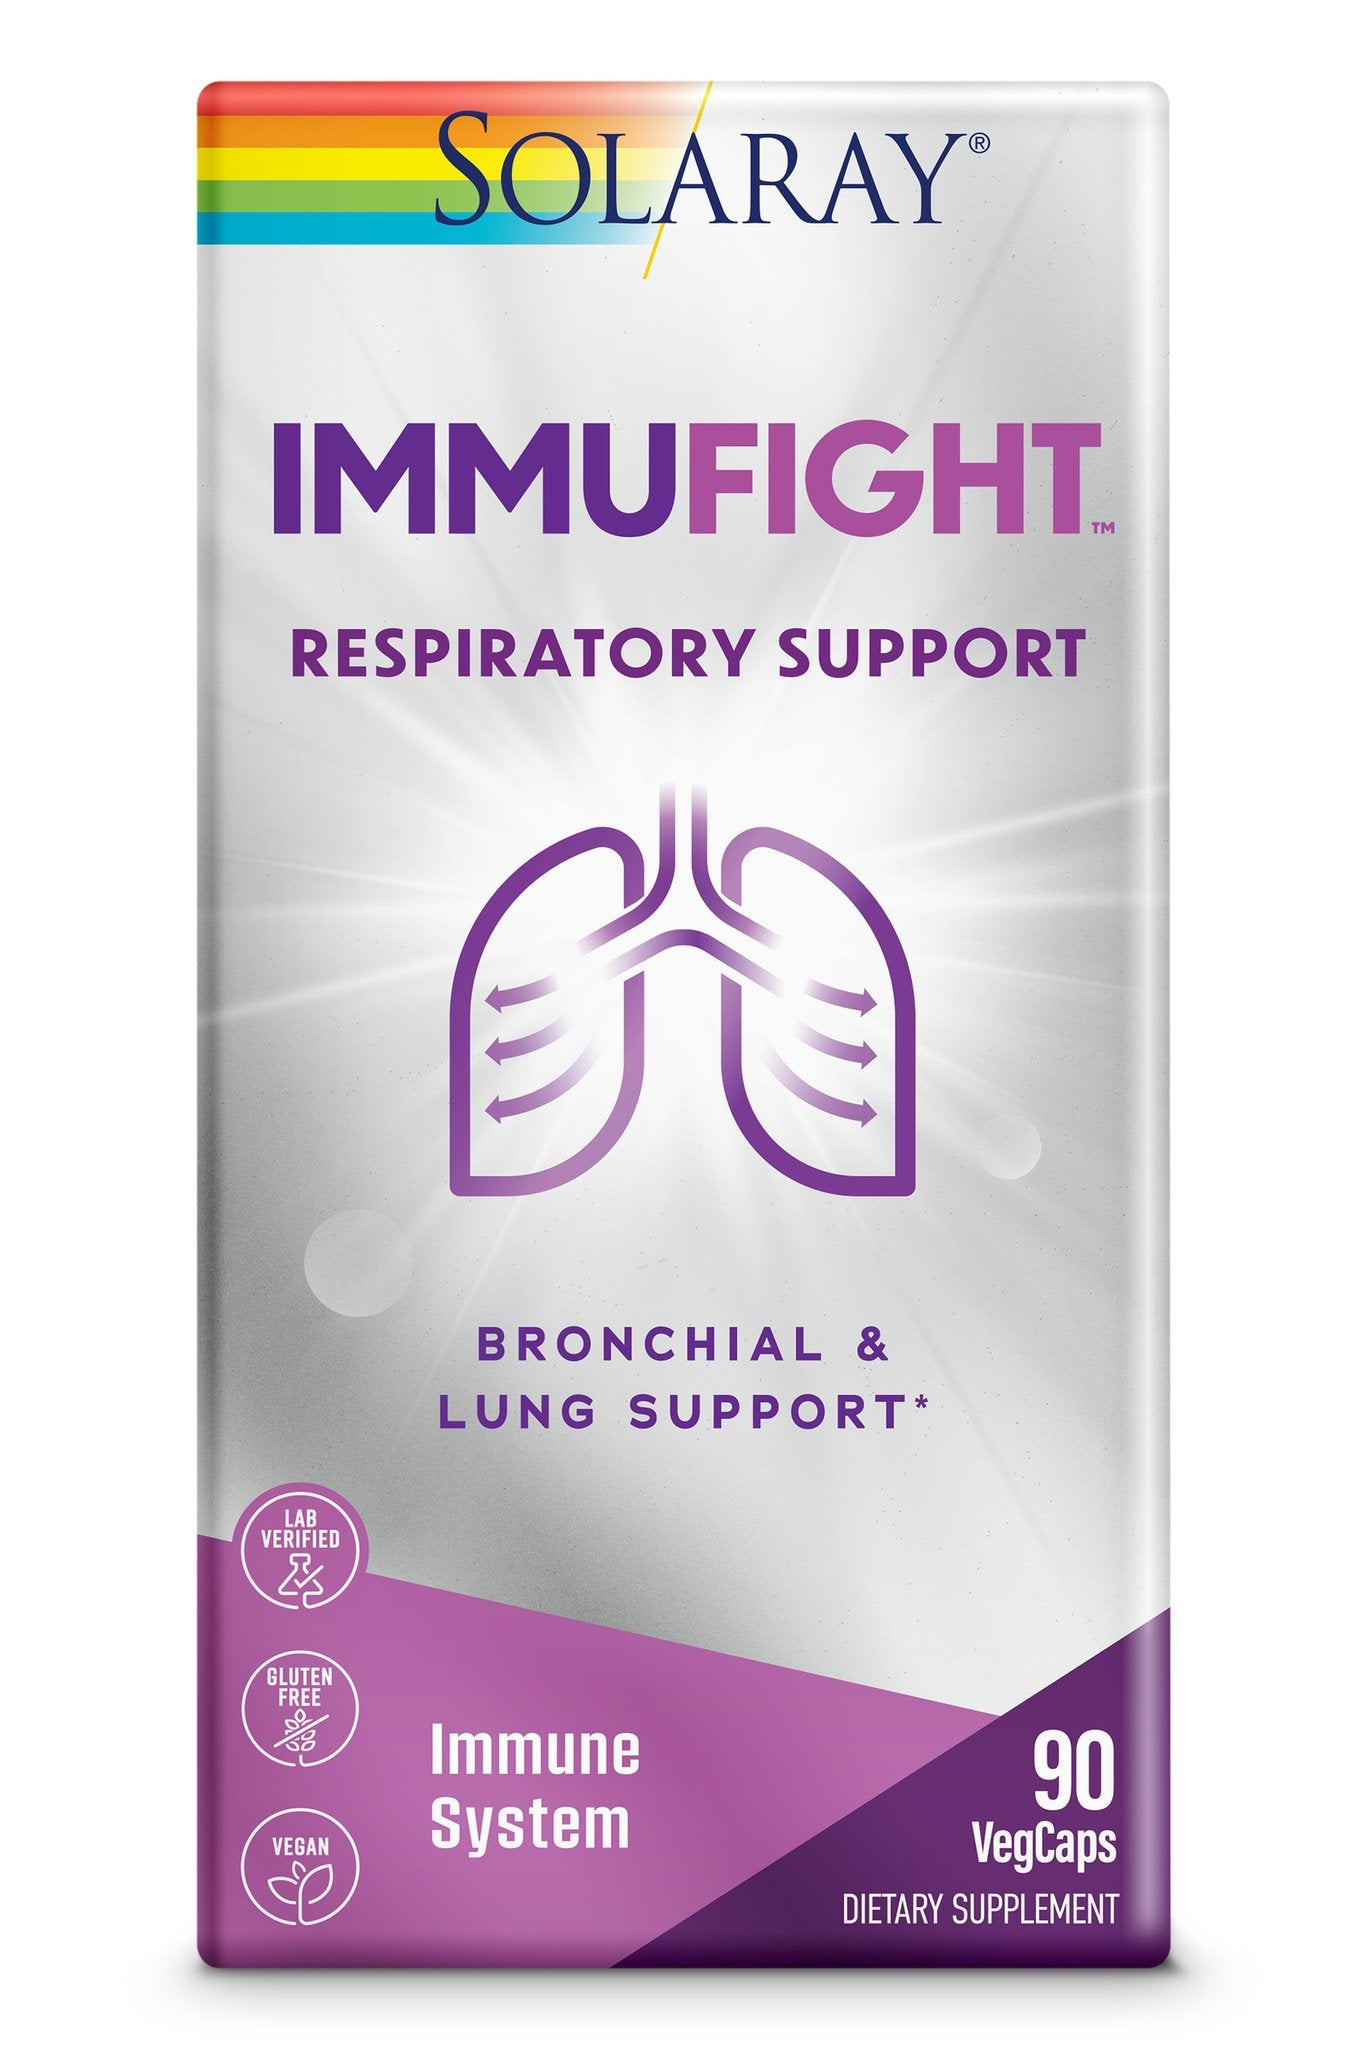 Solaray Immufight Respiratory Support Bronchial & Lung Support 90 Veg Caps